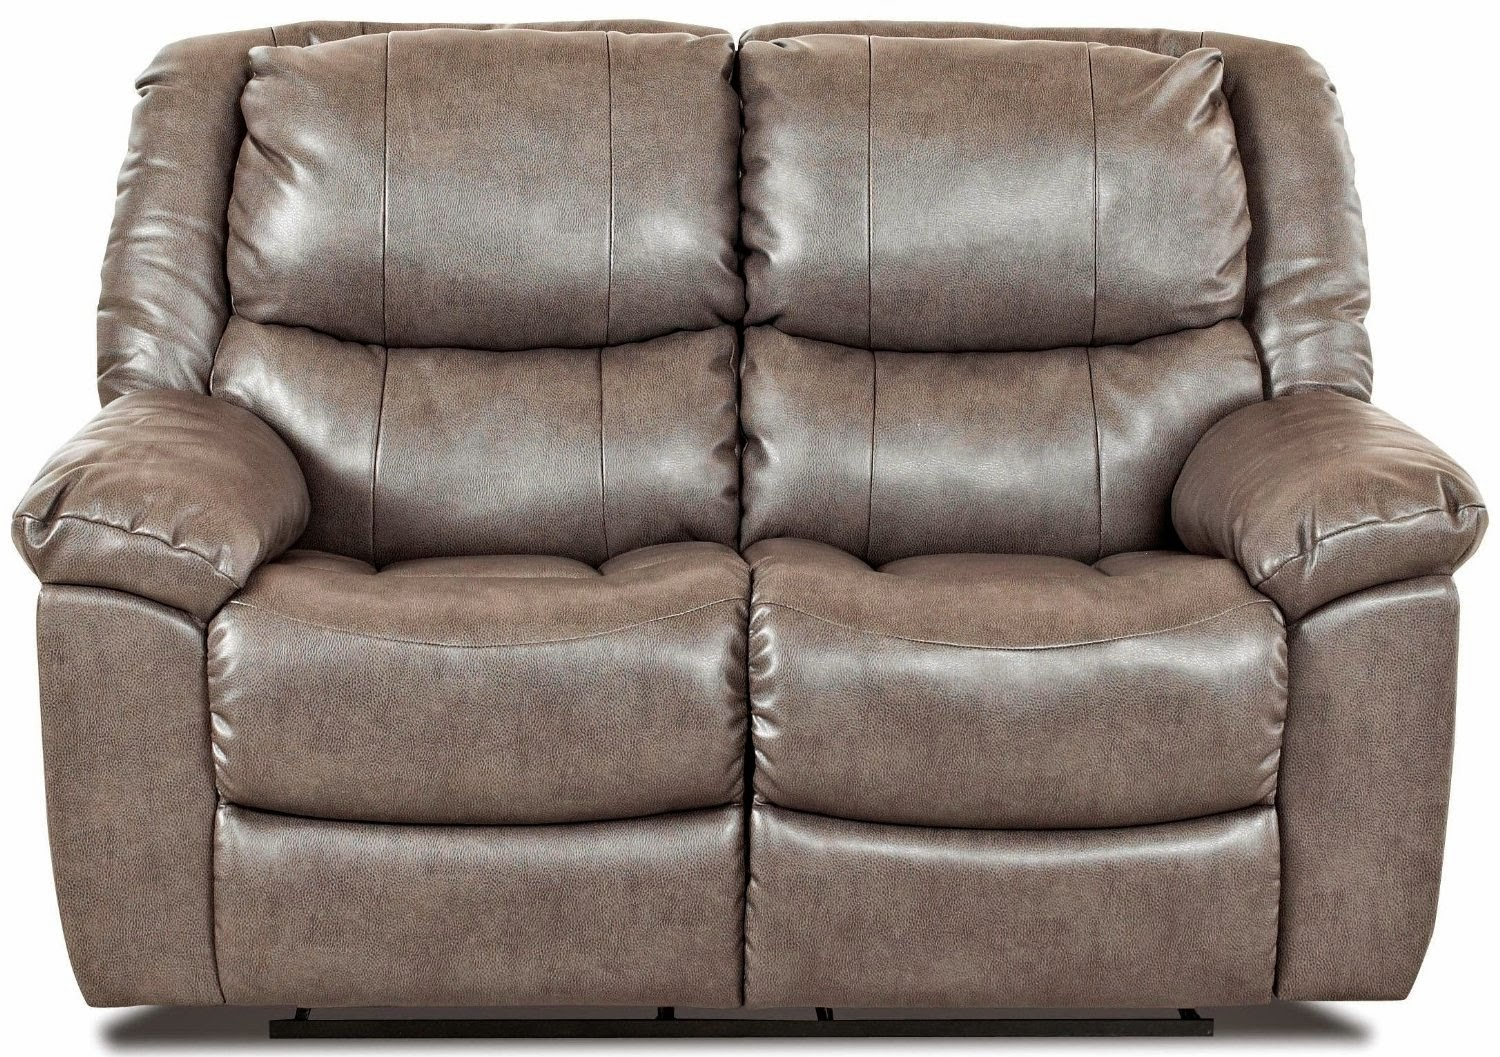 Best reclining sofa for the money klaussner bonded leather reclining sofa Leather reclining sofa loveseat